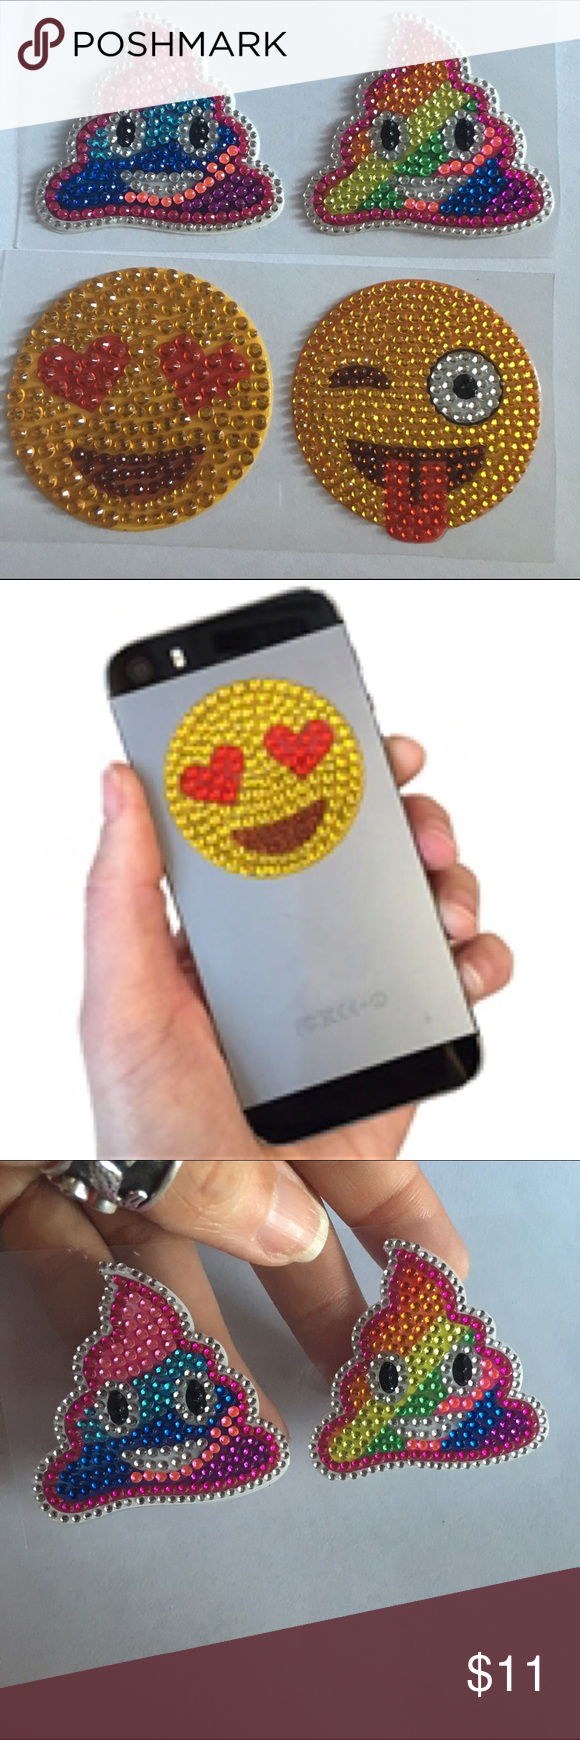 how to get iphone stickers